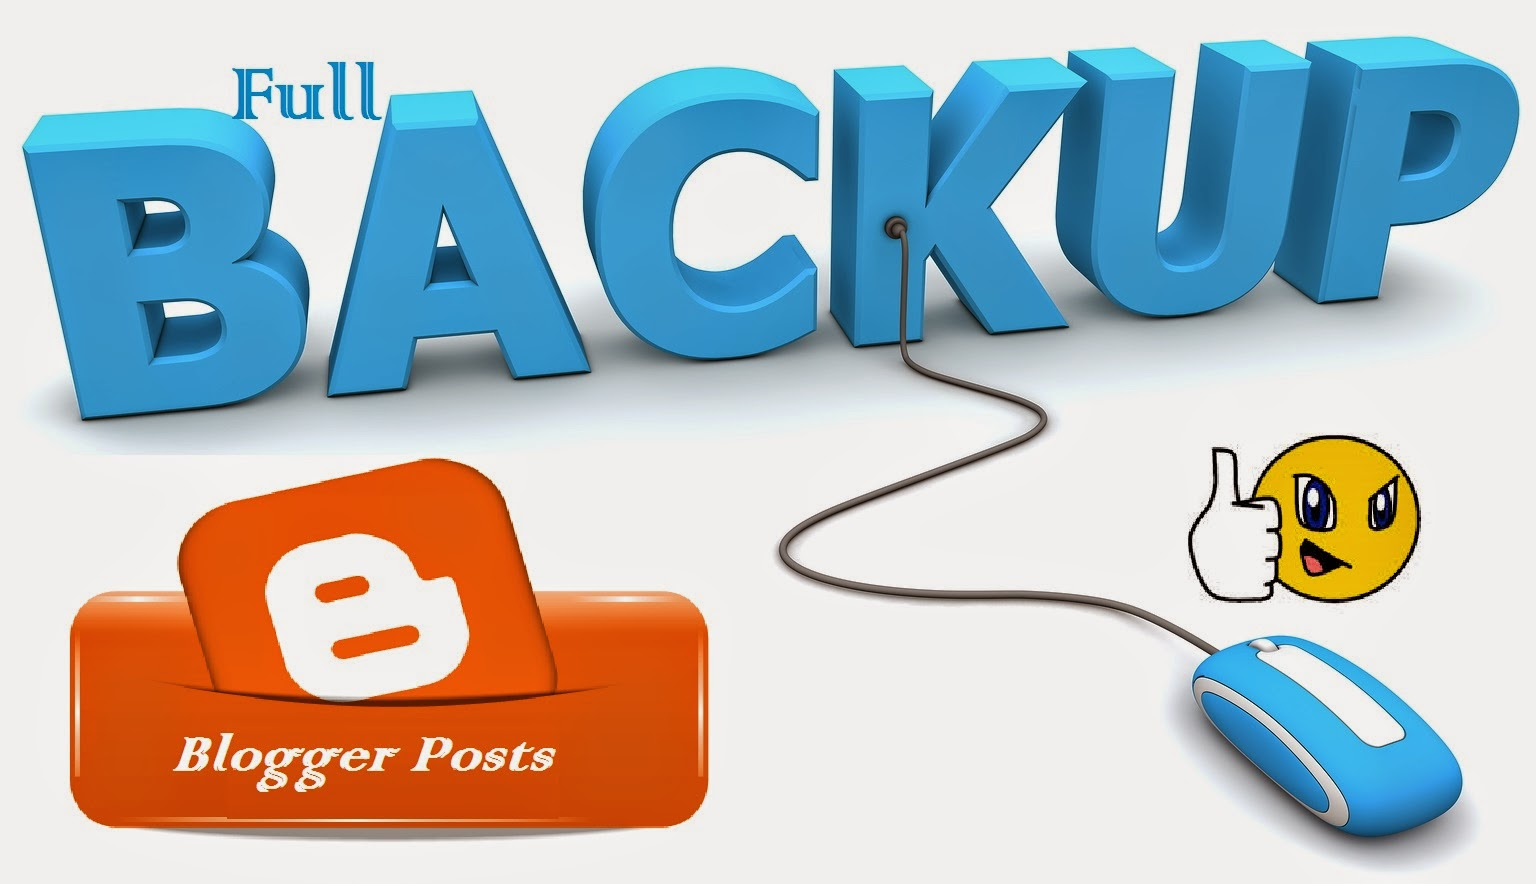 How_to_download_full_backup_of_blogger_blog_posts